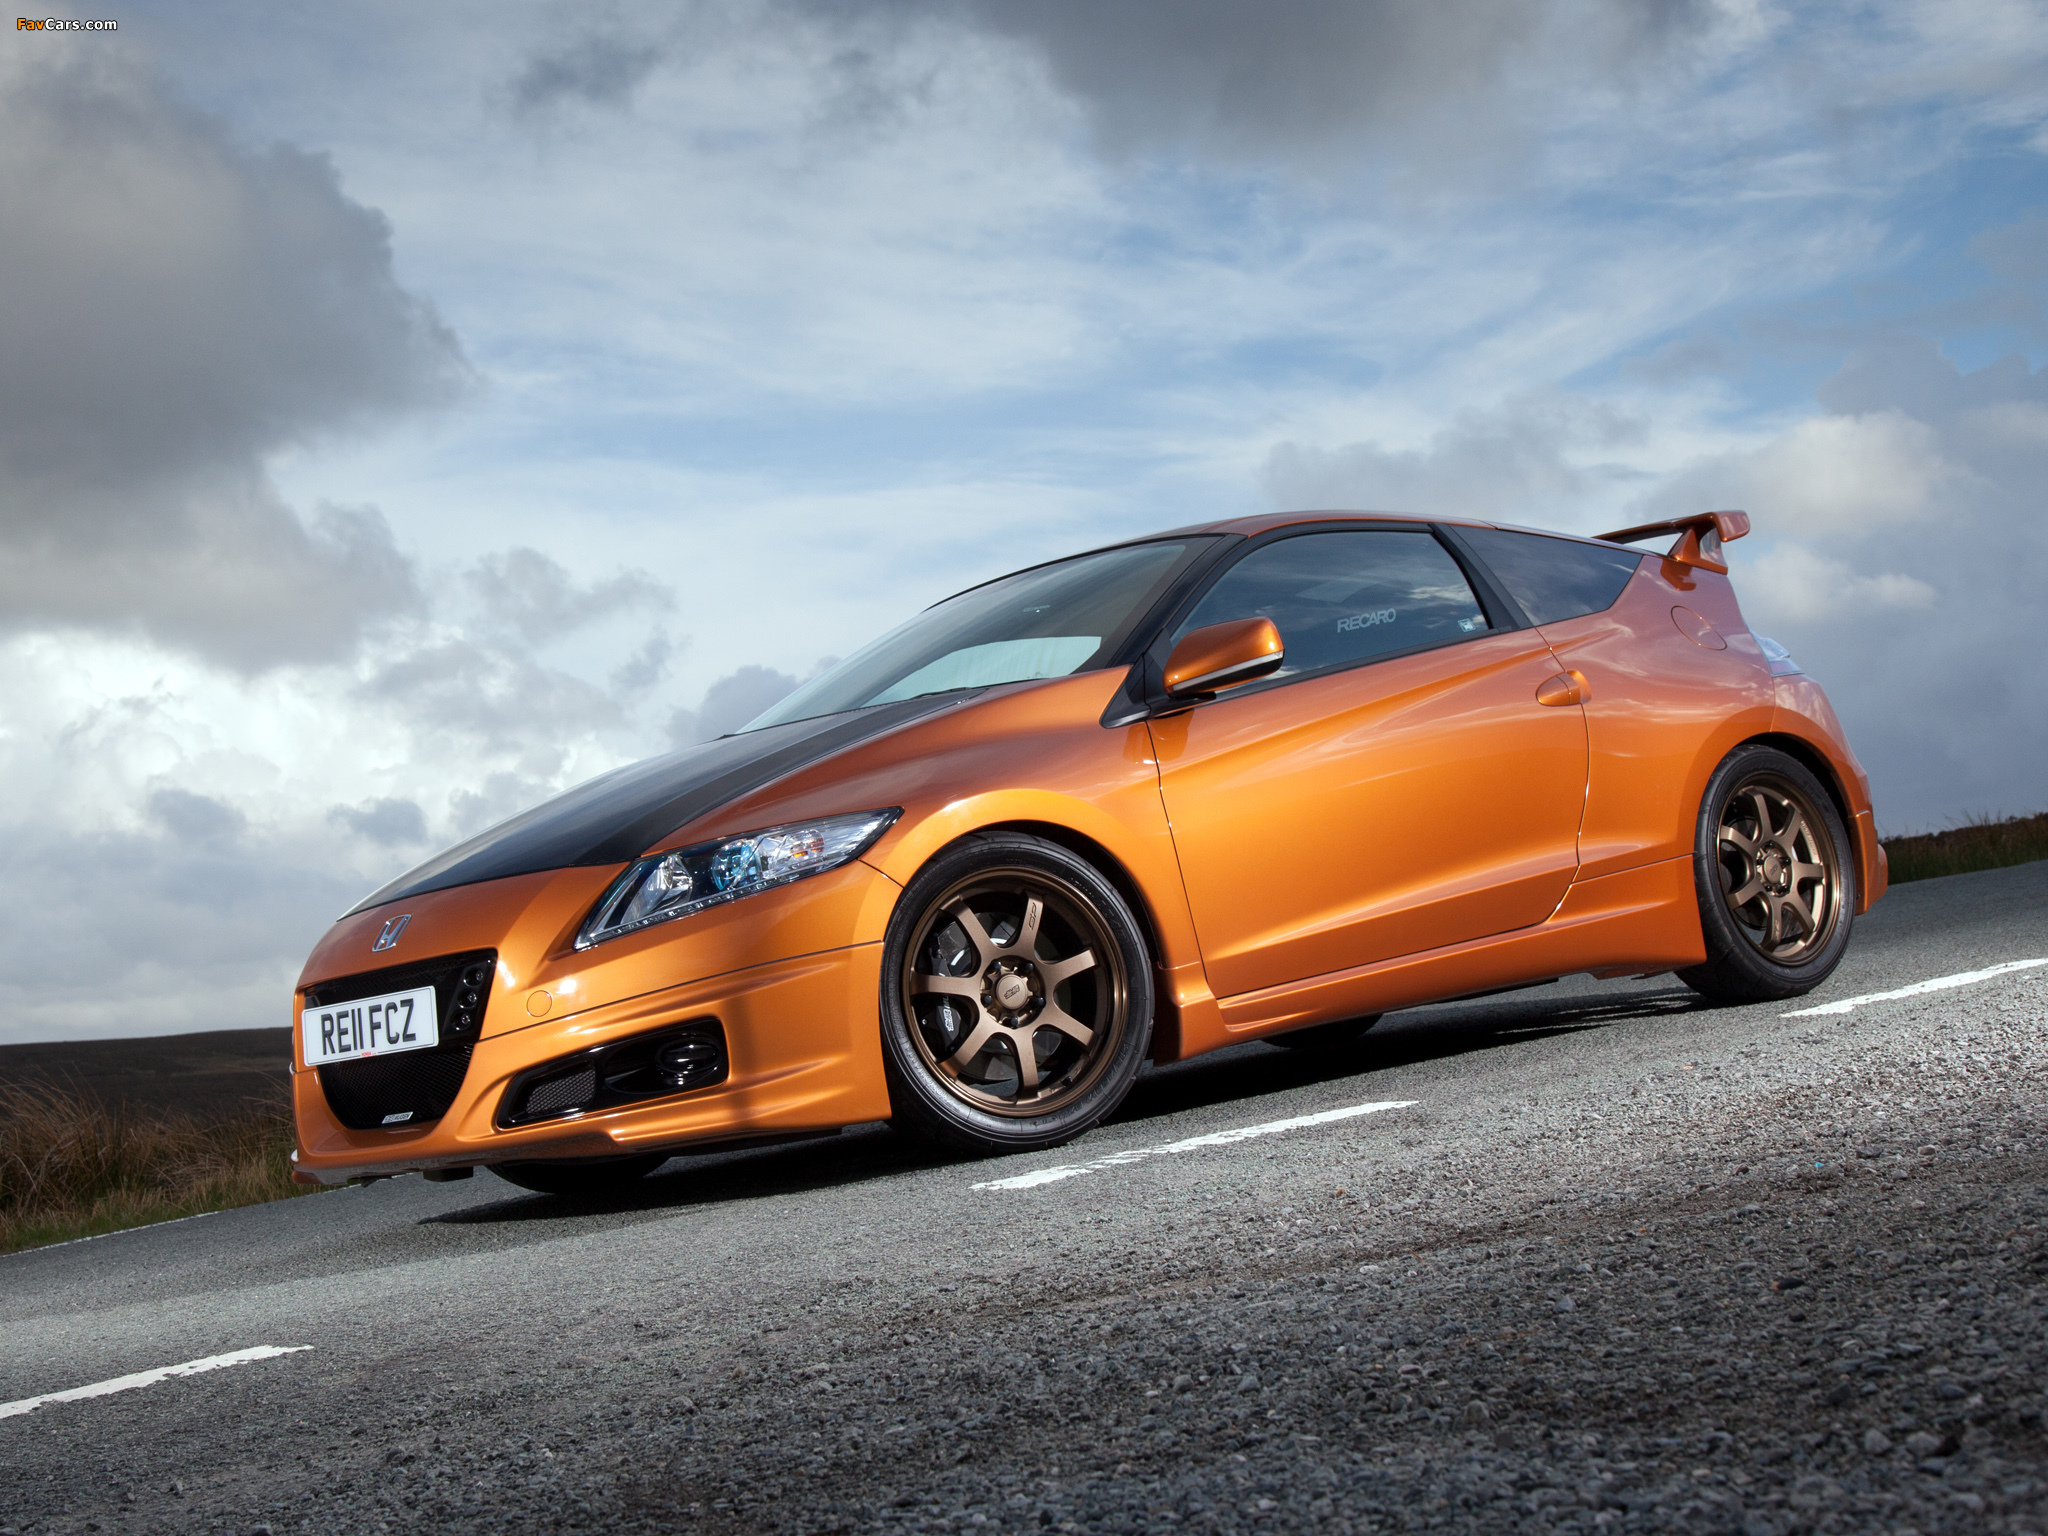 Pictures Of Mugen Honda Cr Z Concept Zf1 2011 2048x1536